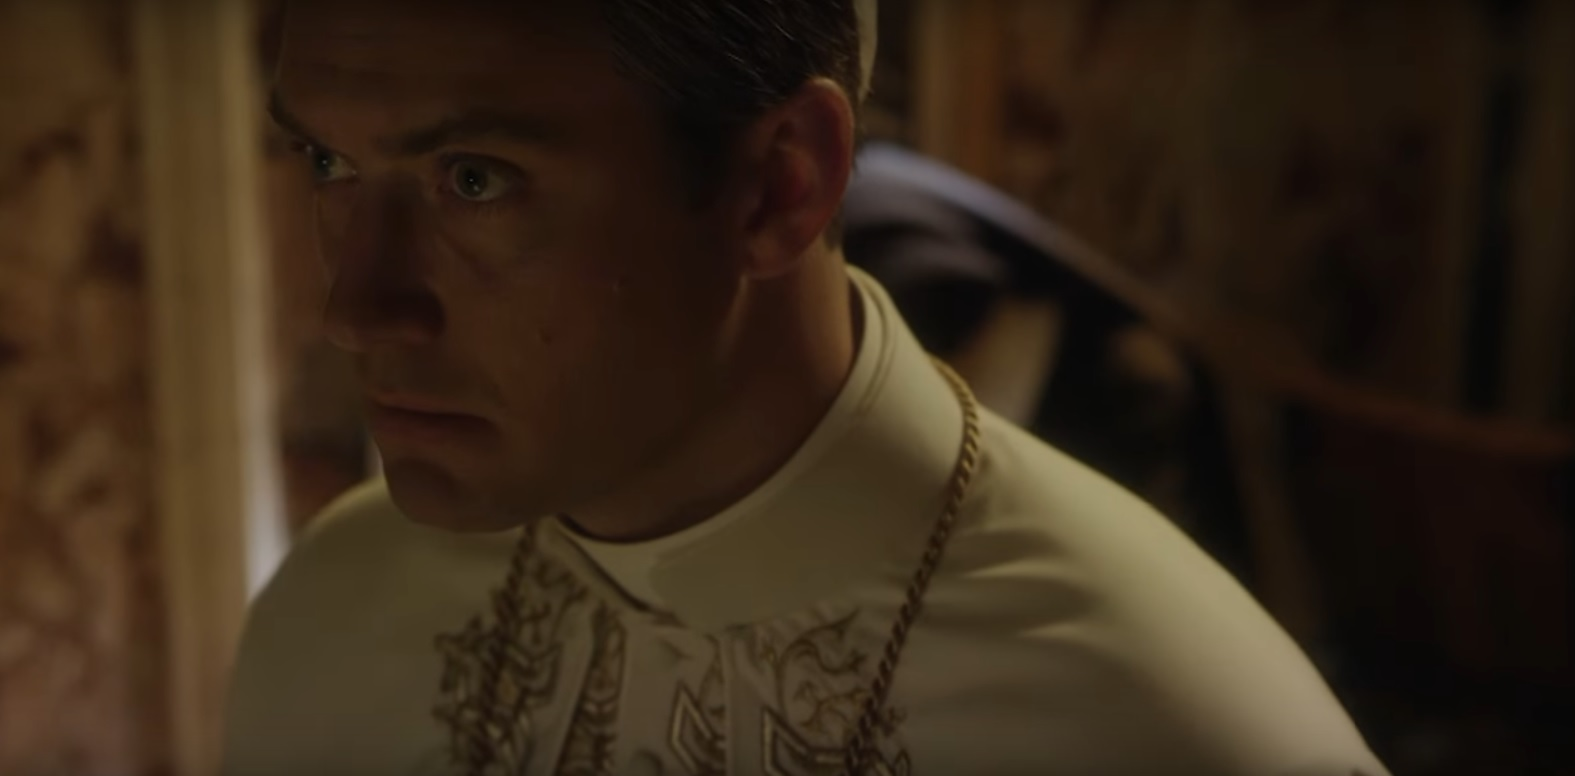 Jude Law is hungry for power in new trailer for HBO's 'The Young Pope'